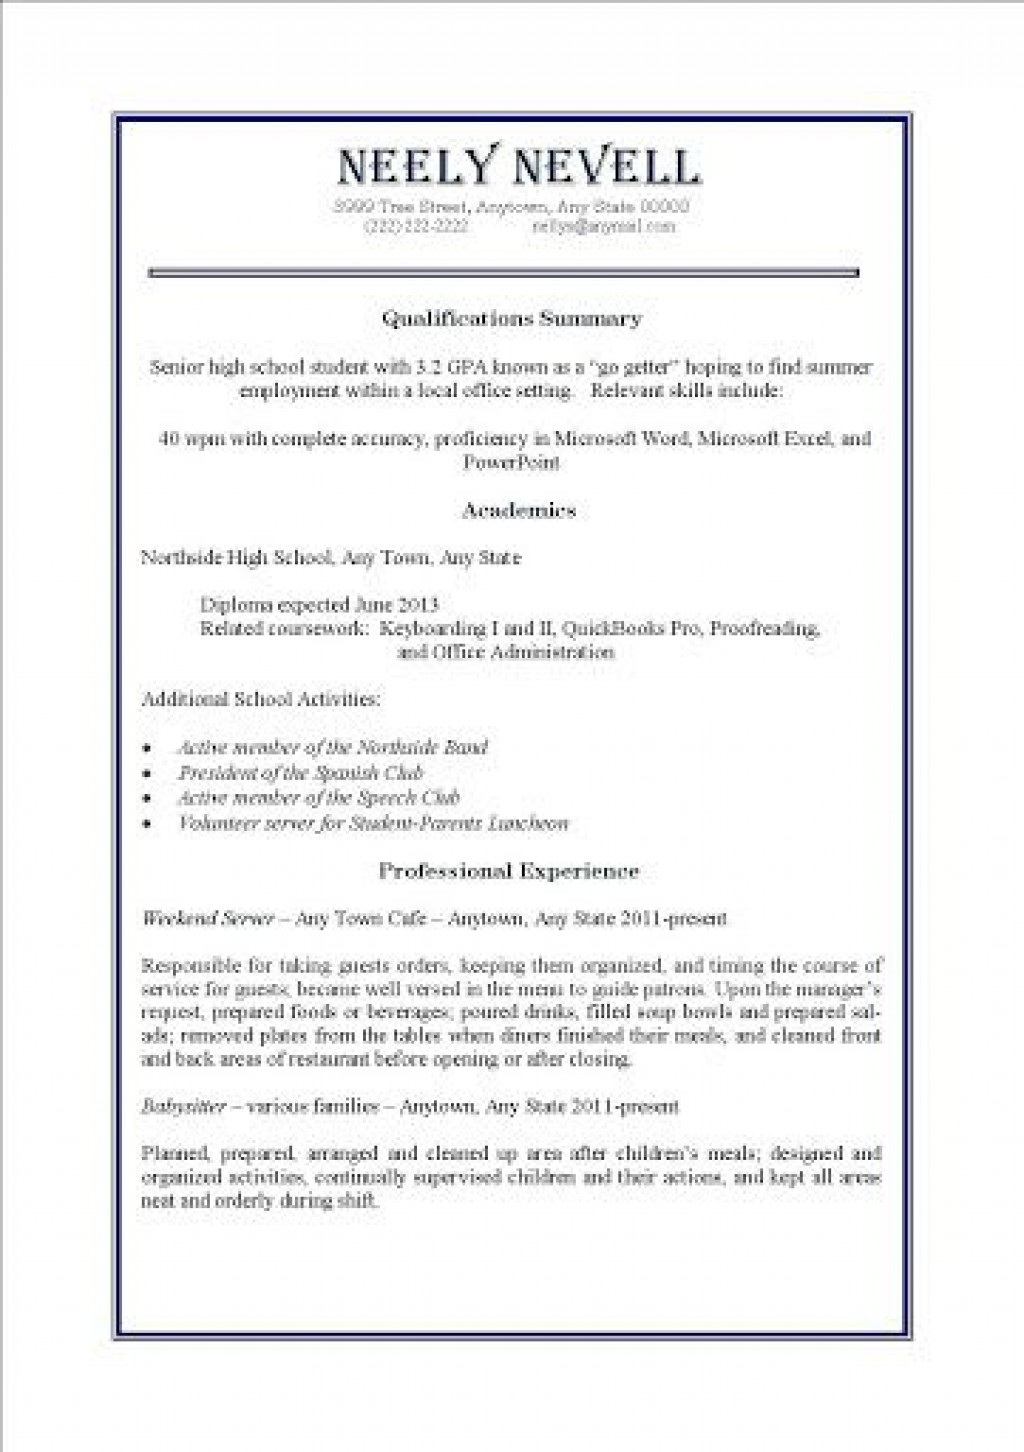 009 Impressive Resume Template For First Job High Definition  After College Sample Student TeenagerLarge